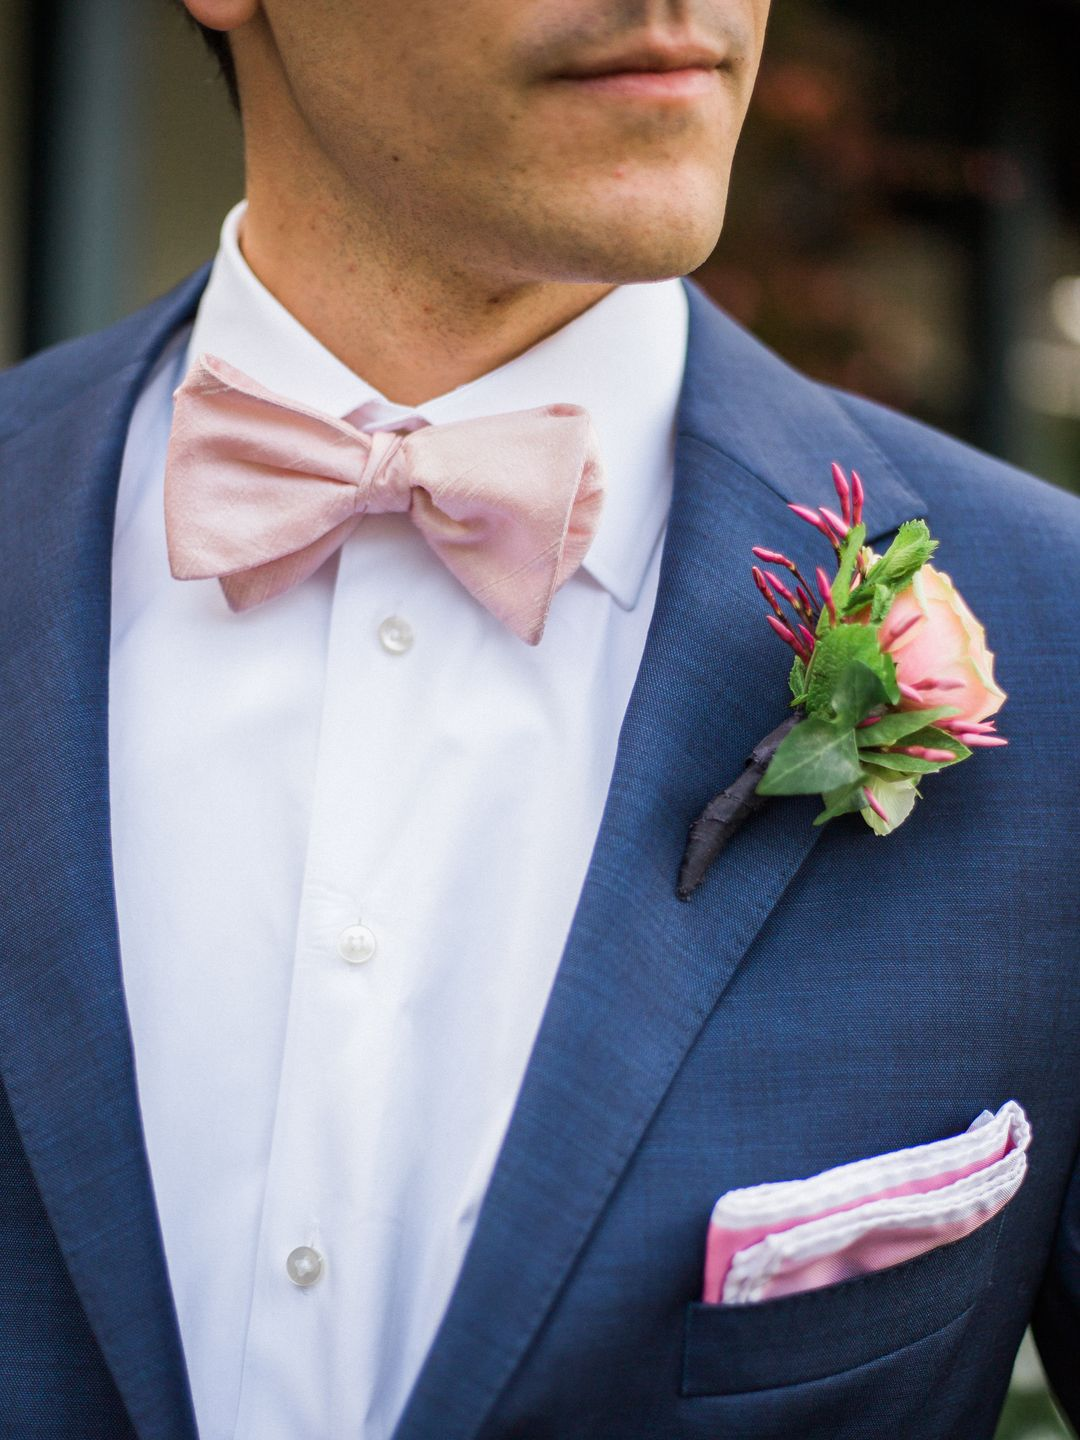 Preppy Wedding Fashion Groom Attire Pink Bow Tie And Pocket Square Blue Suit Pink Floral Bout Follo Blue Tuxedo Wedding Best Wedding Suits Groom Blue Suit